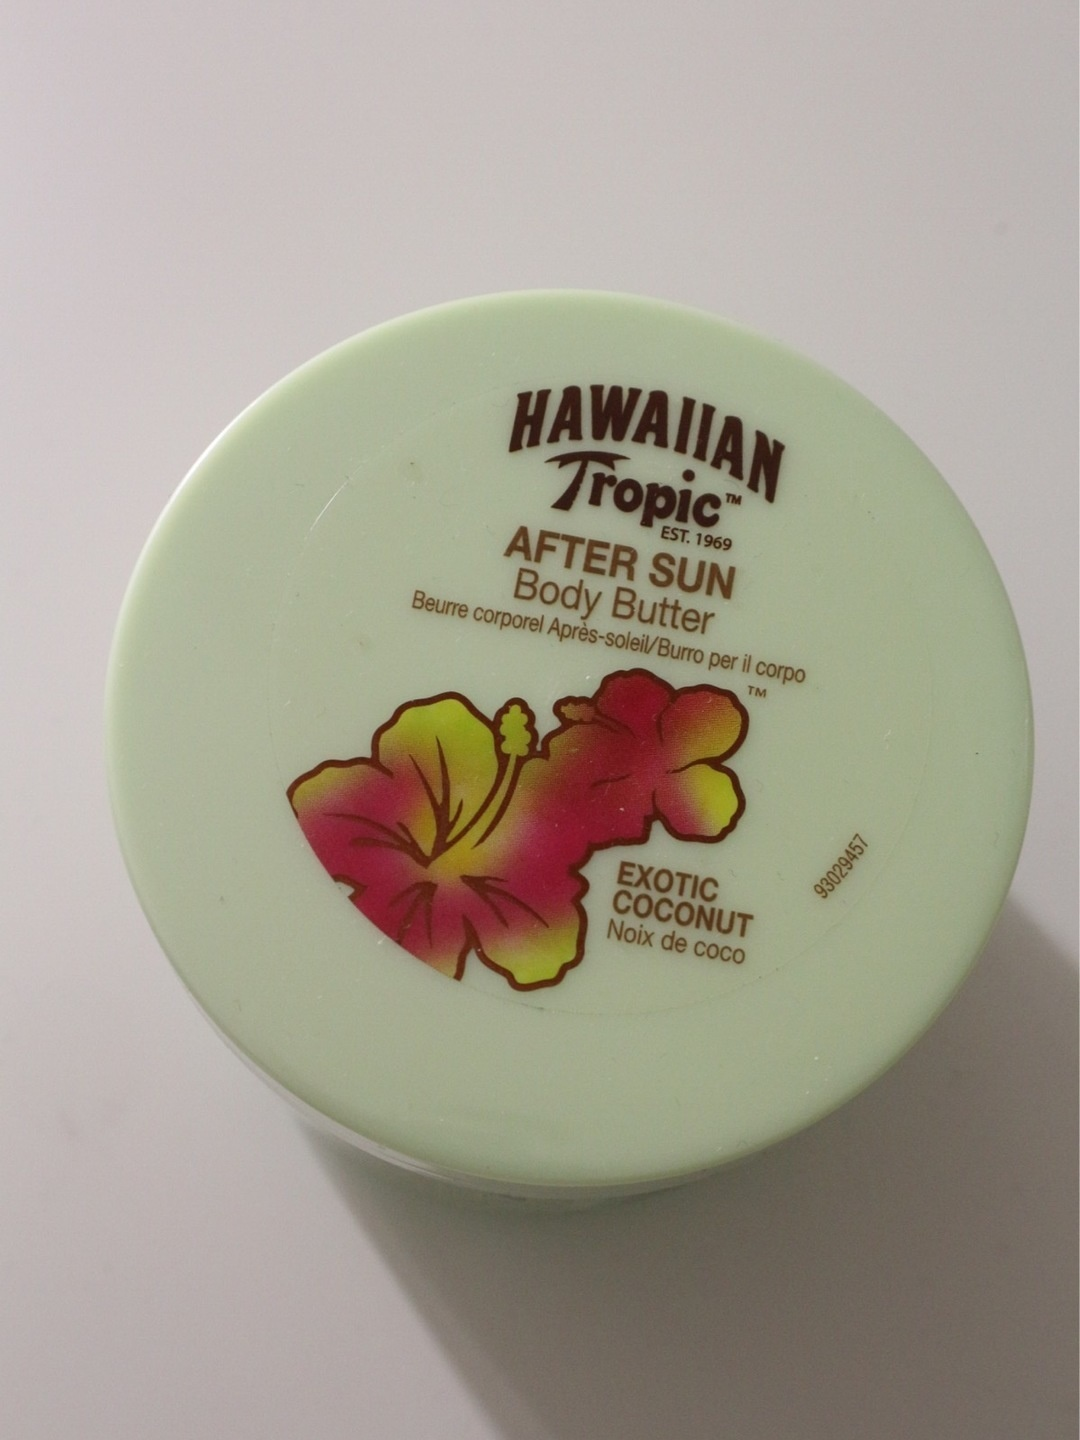 Women's cosmetics & beauty - HAWAIIAN TROPIC photo 2